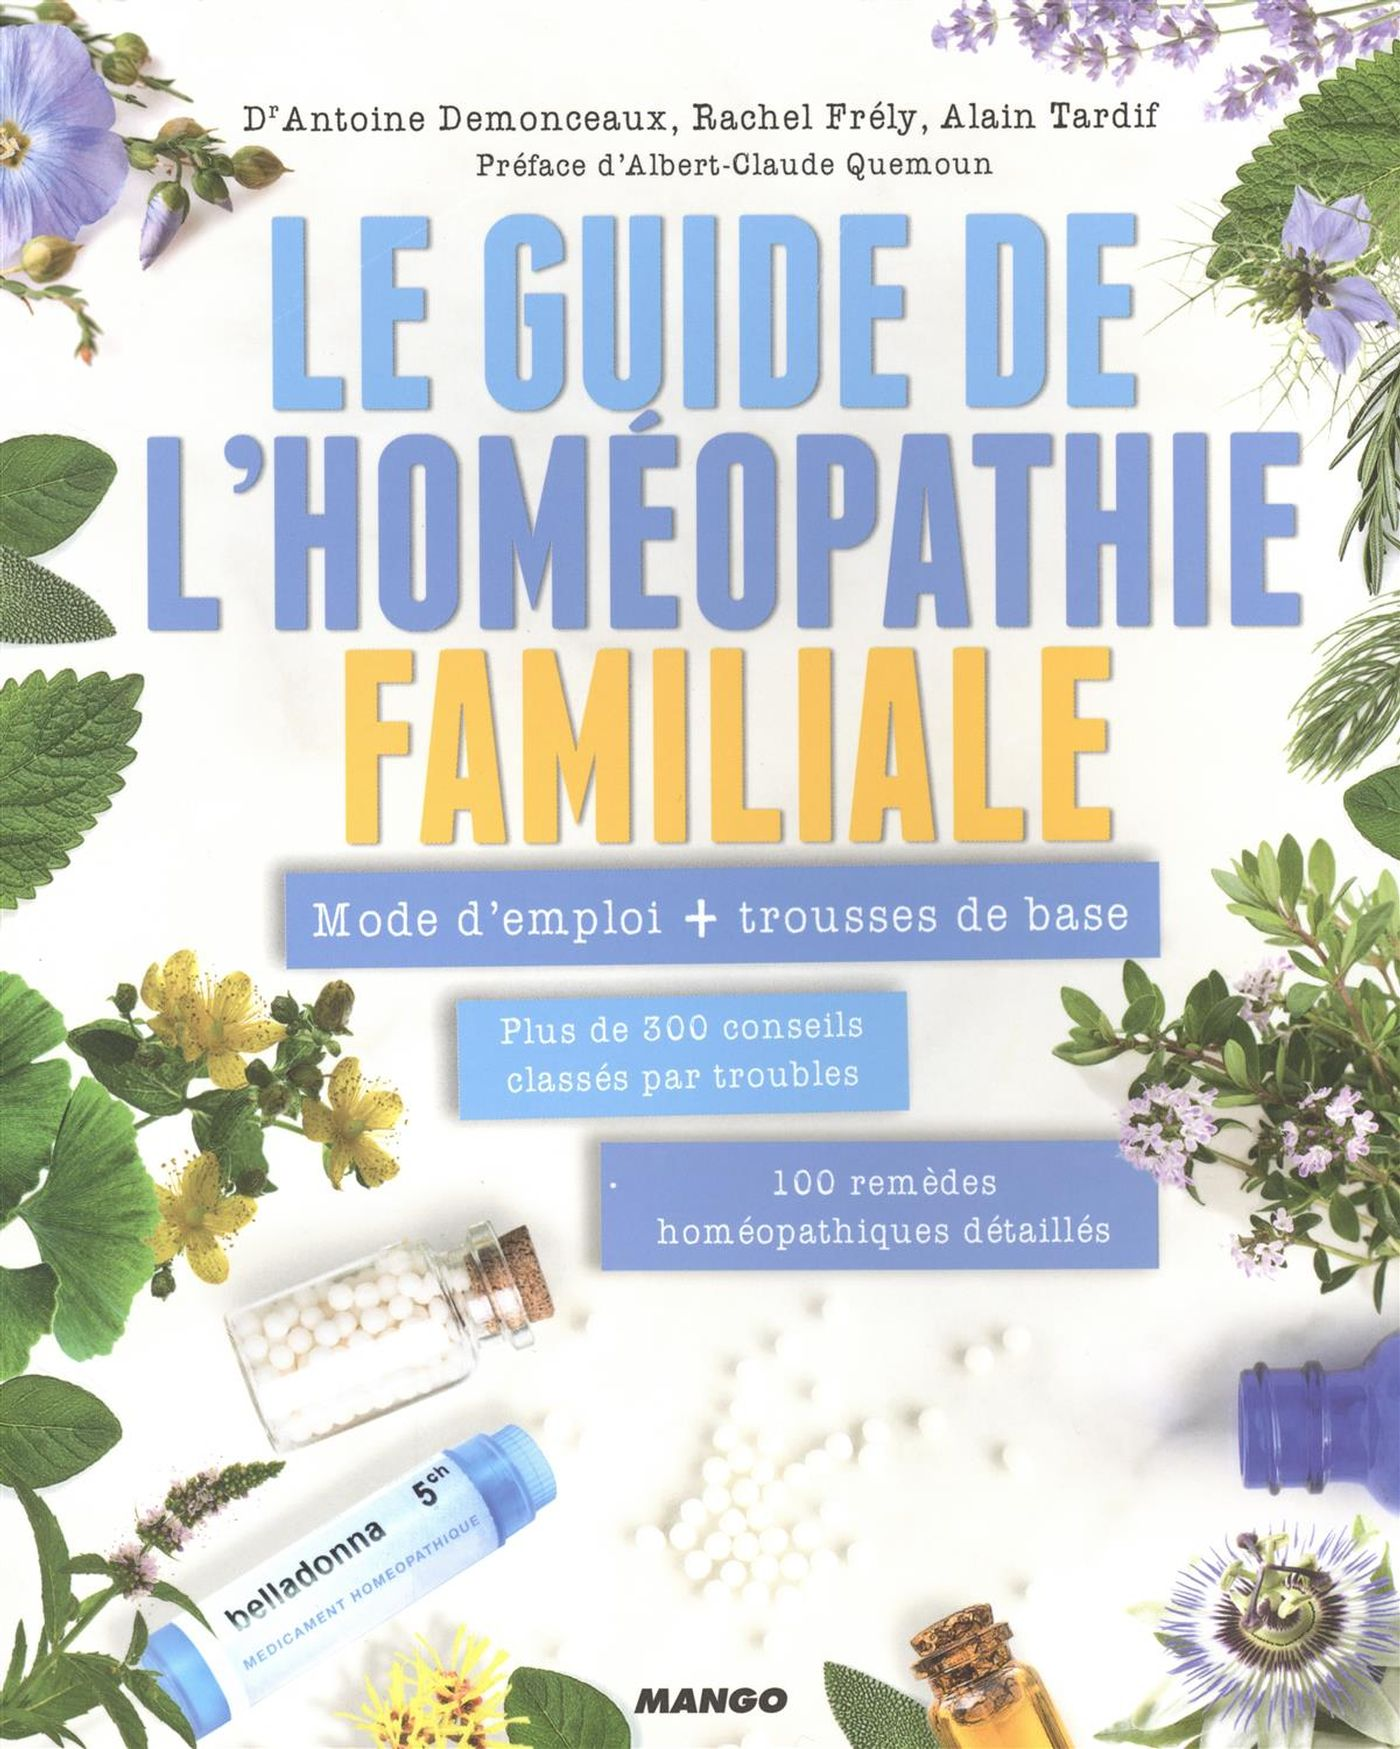 Le Guide De L Homeopathie Familiale Distribution Prologue